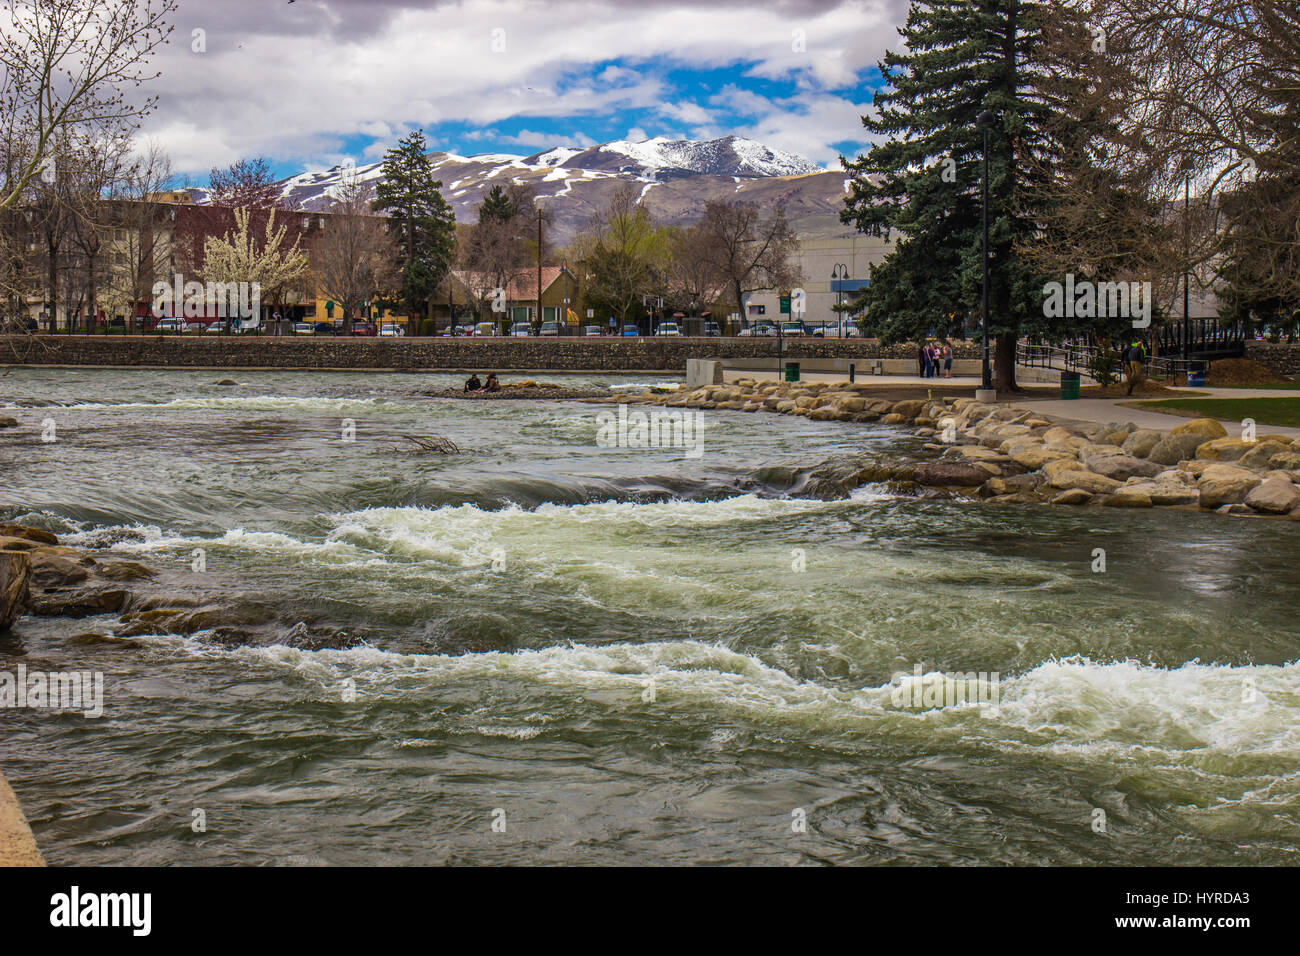 Rushing Truckee River From Melting Snow - Stock Image